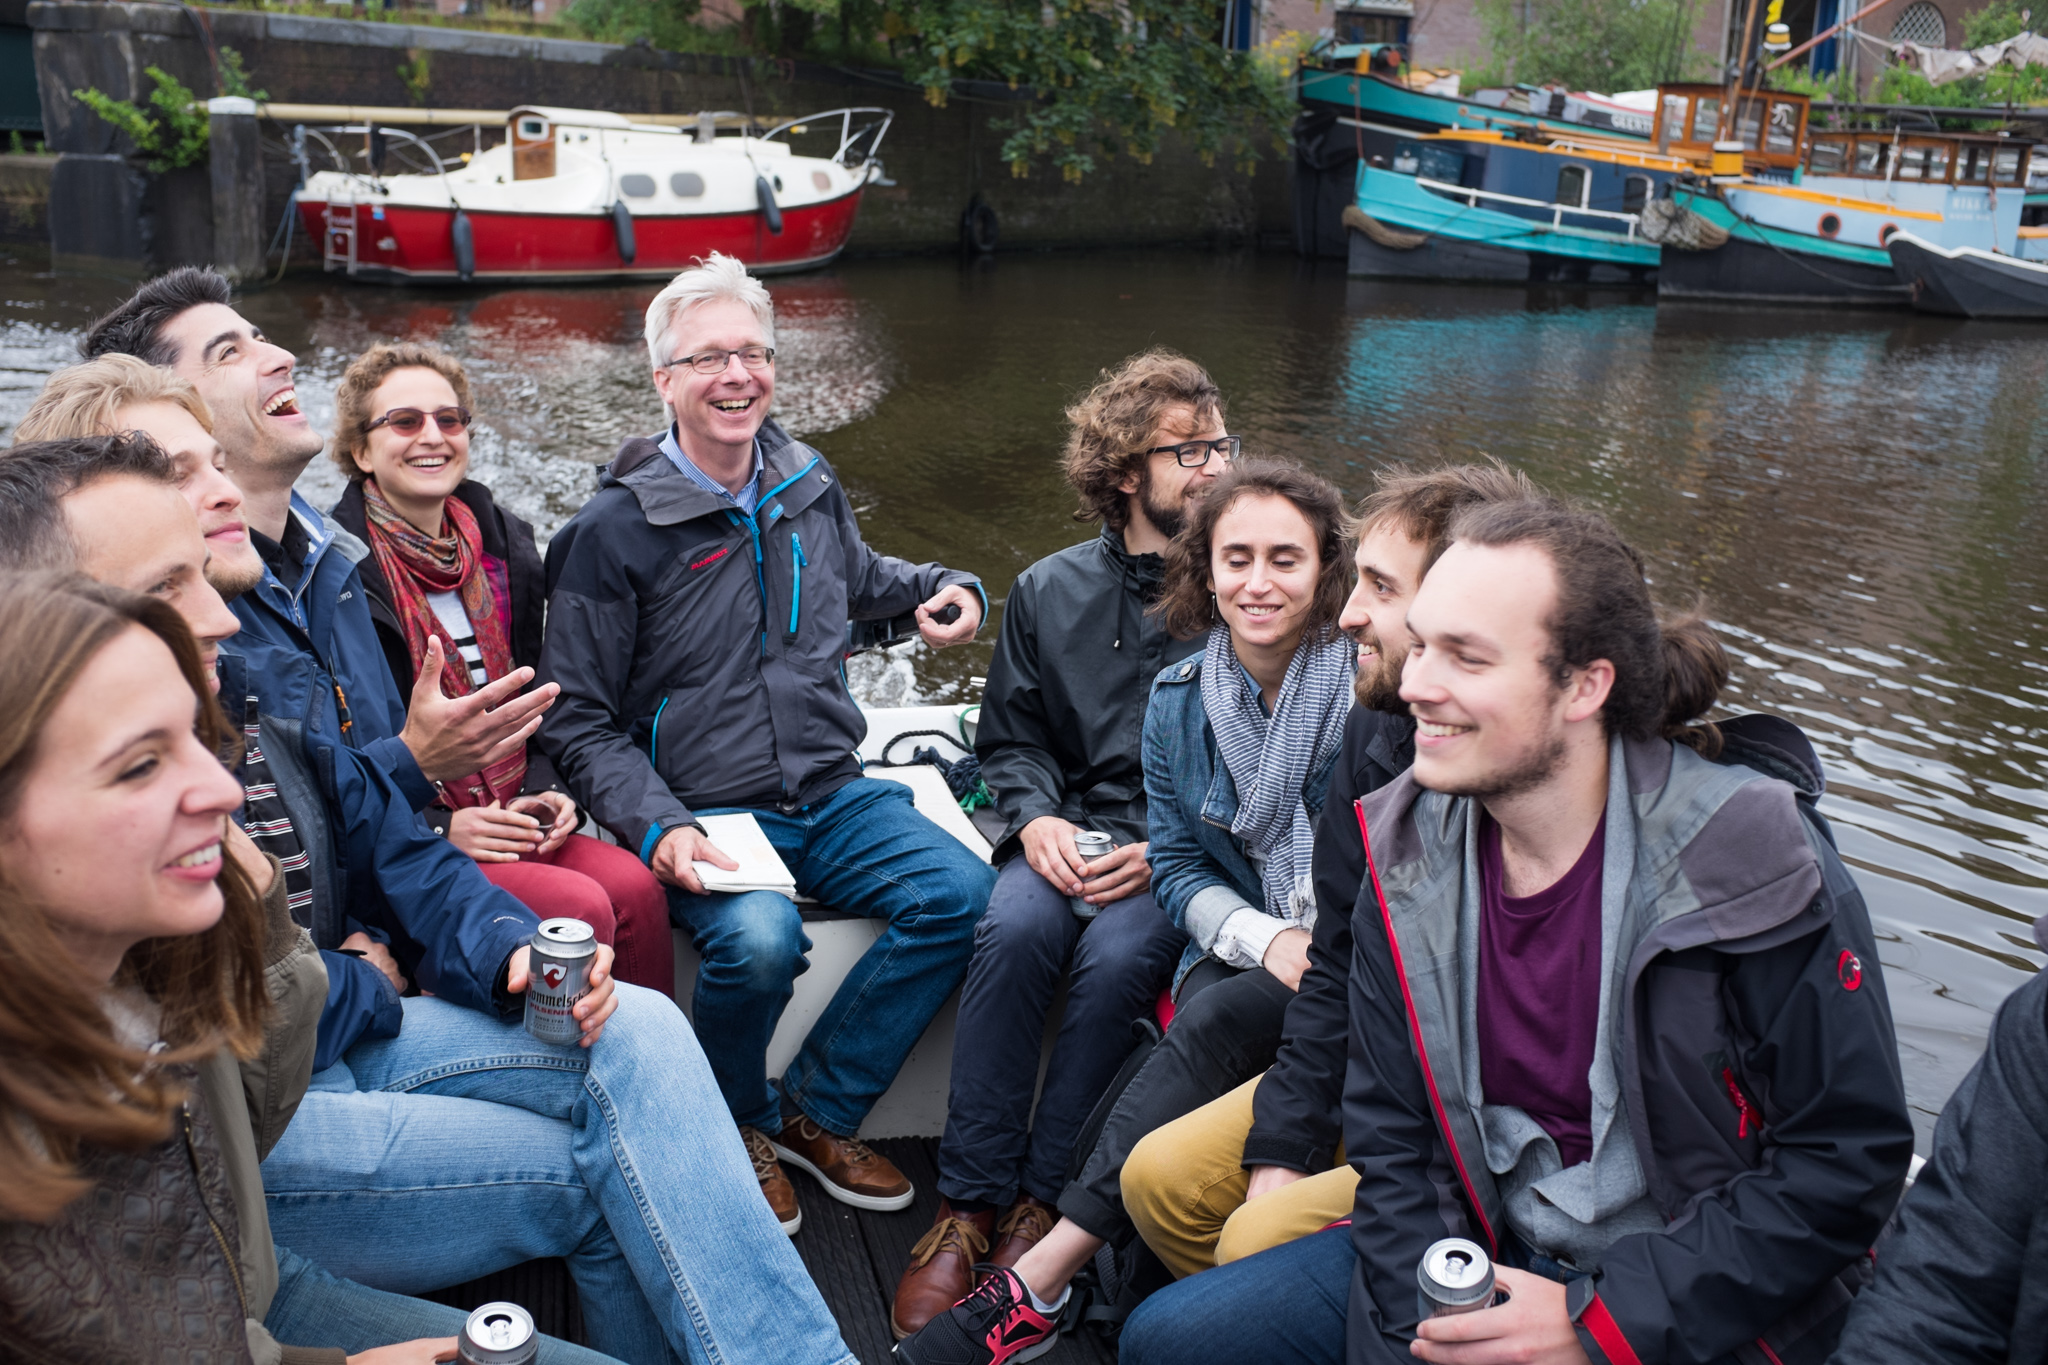 Group boat trip in Amsterdam (July 2016)